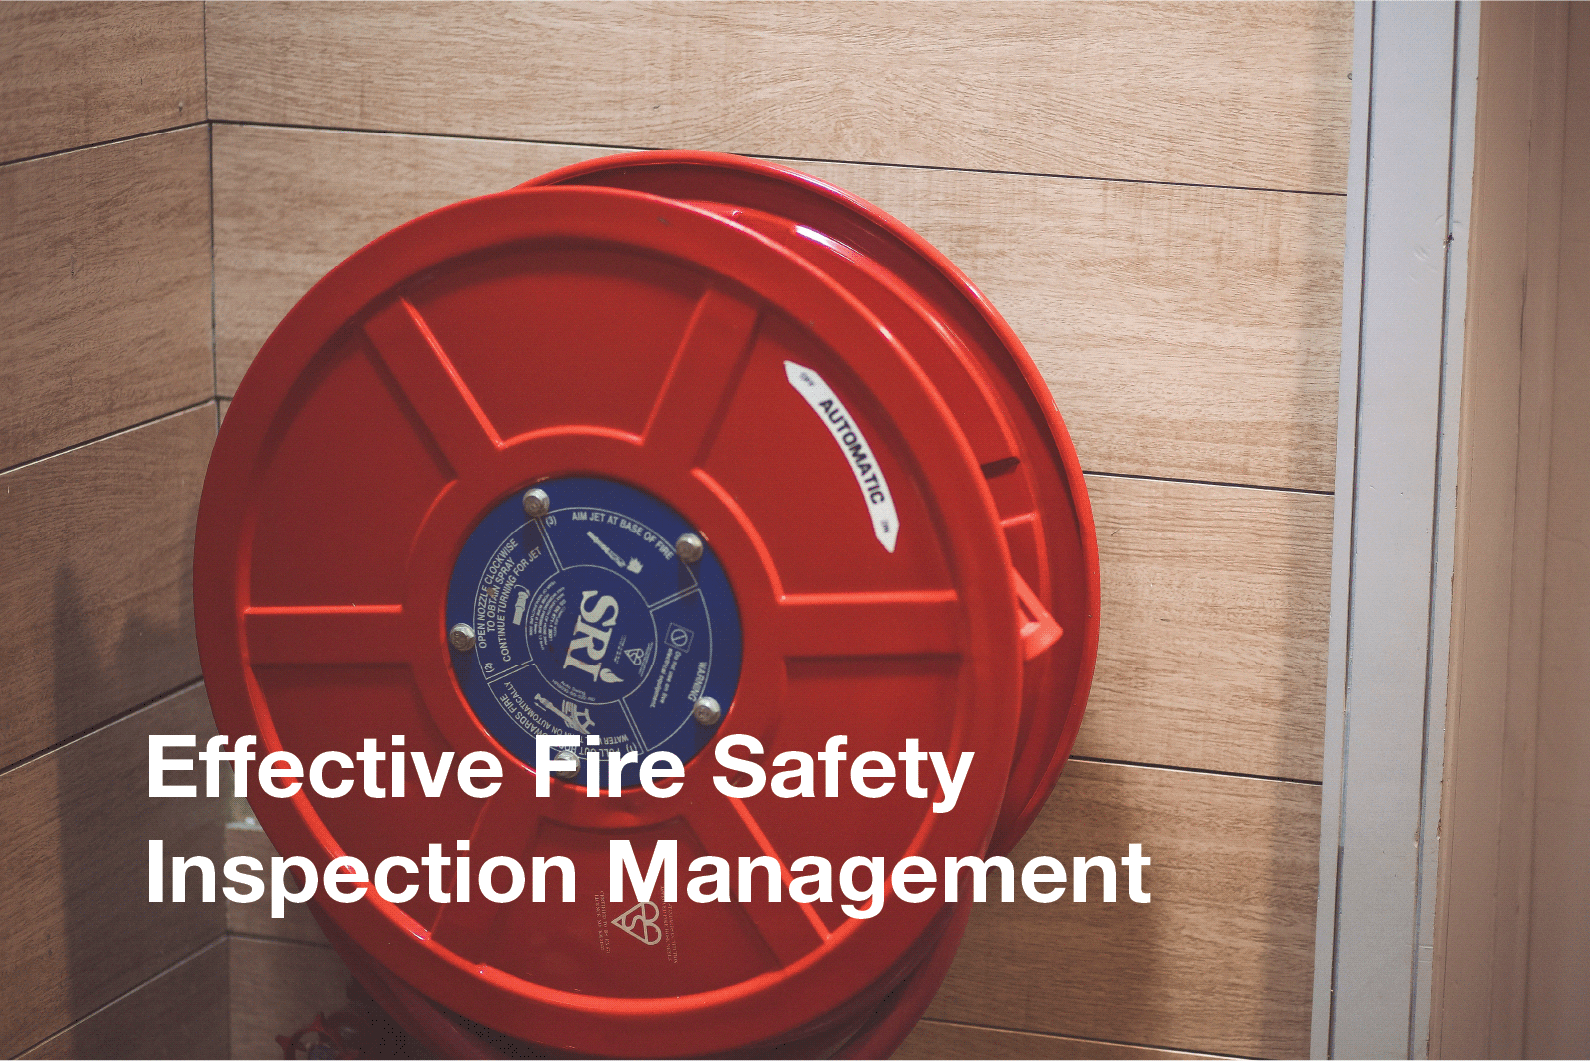 Effective Fire Safety Inspection Mgmt